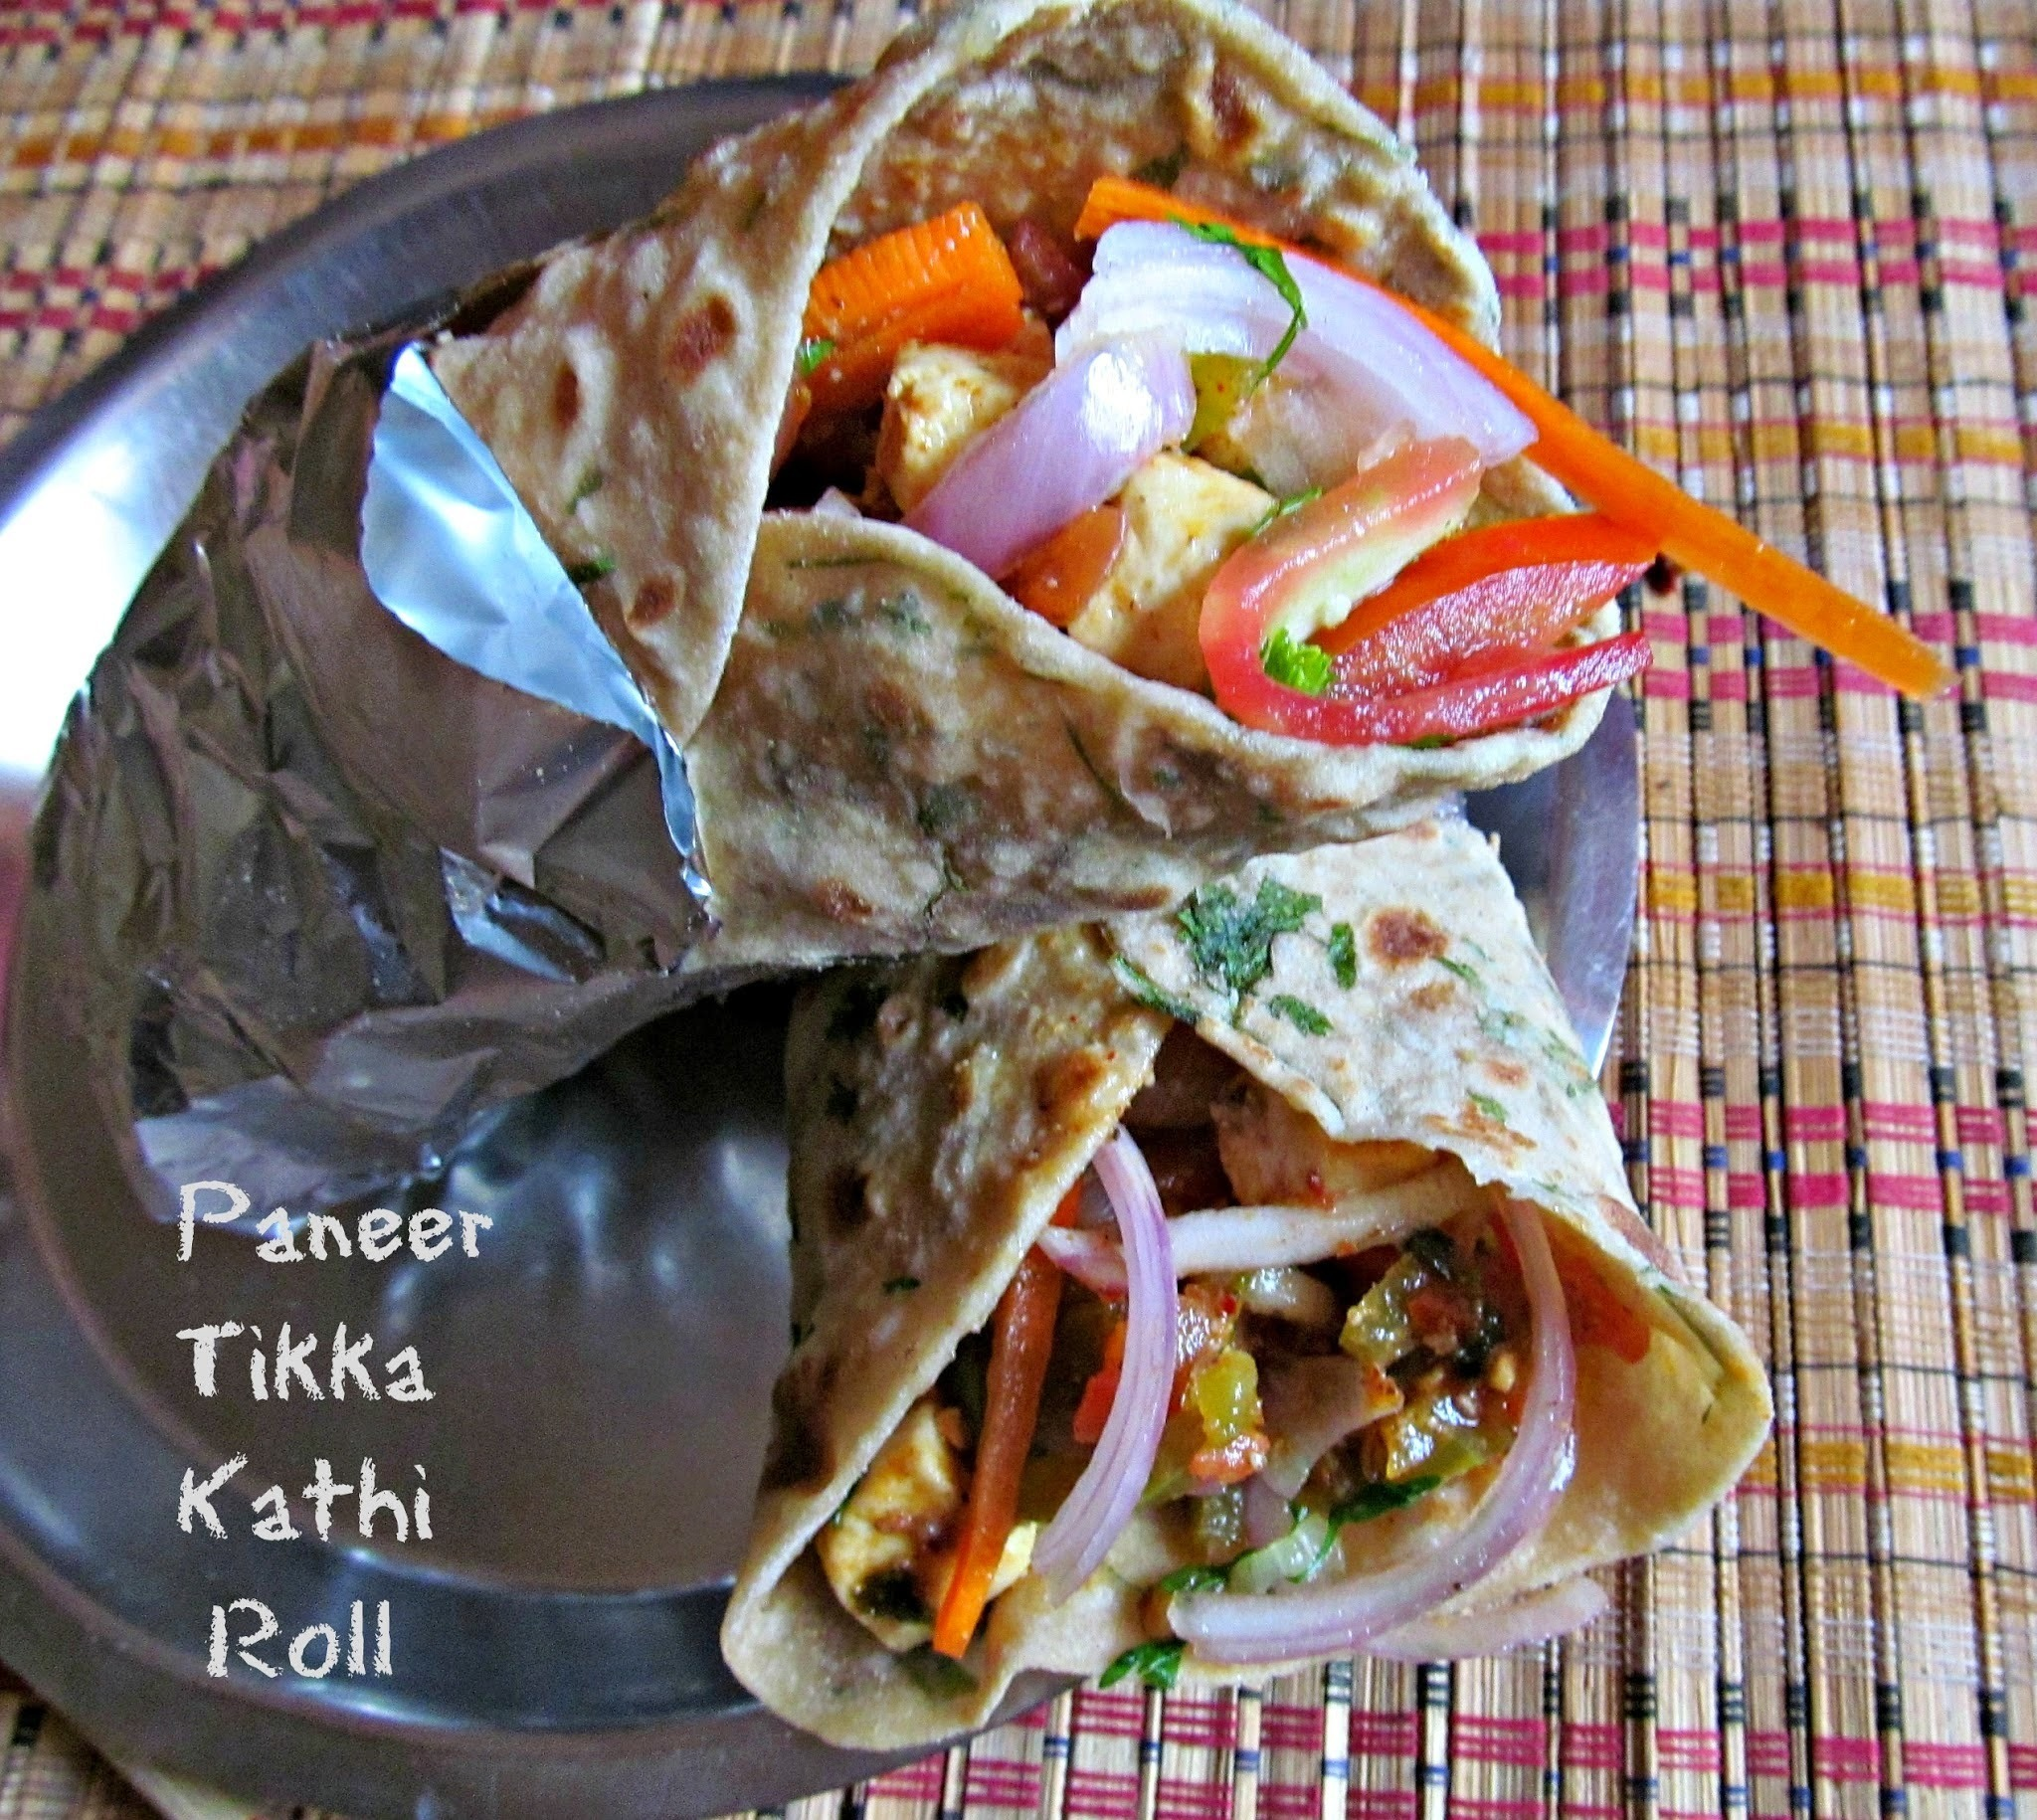 Paneer Tikka Kathi Roll – SNC April Challenge for Southern Team